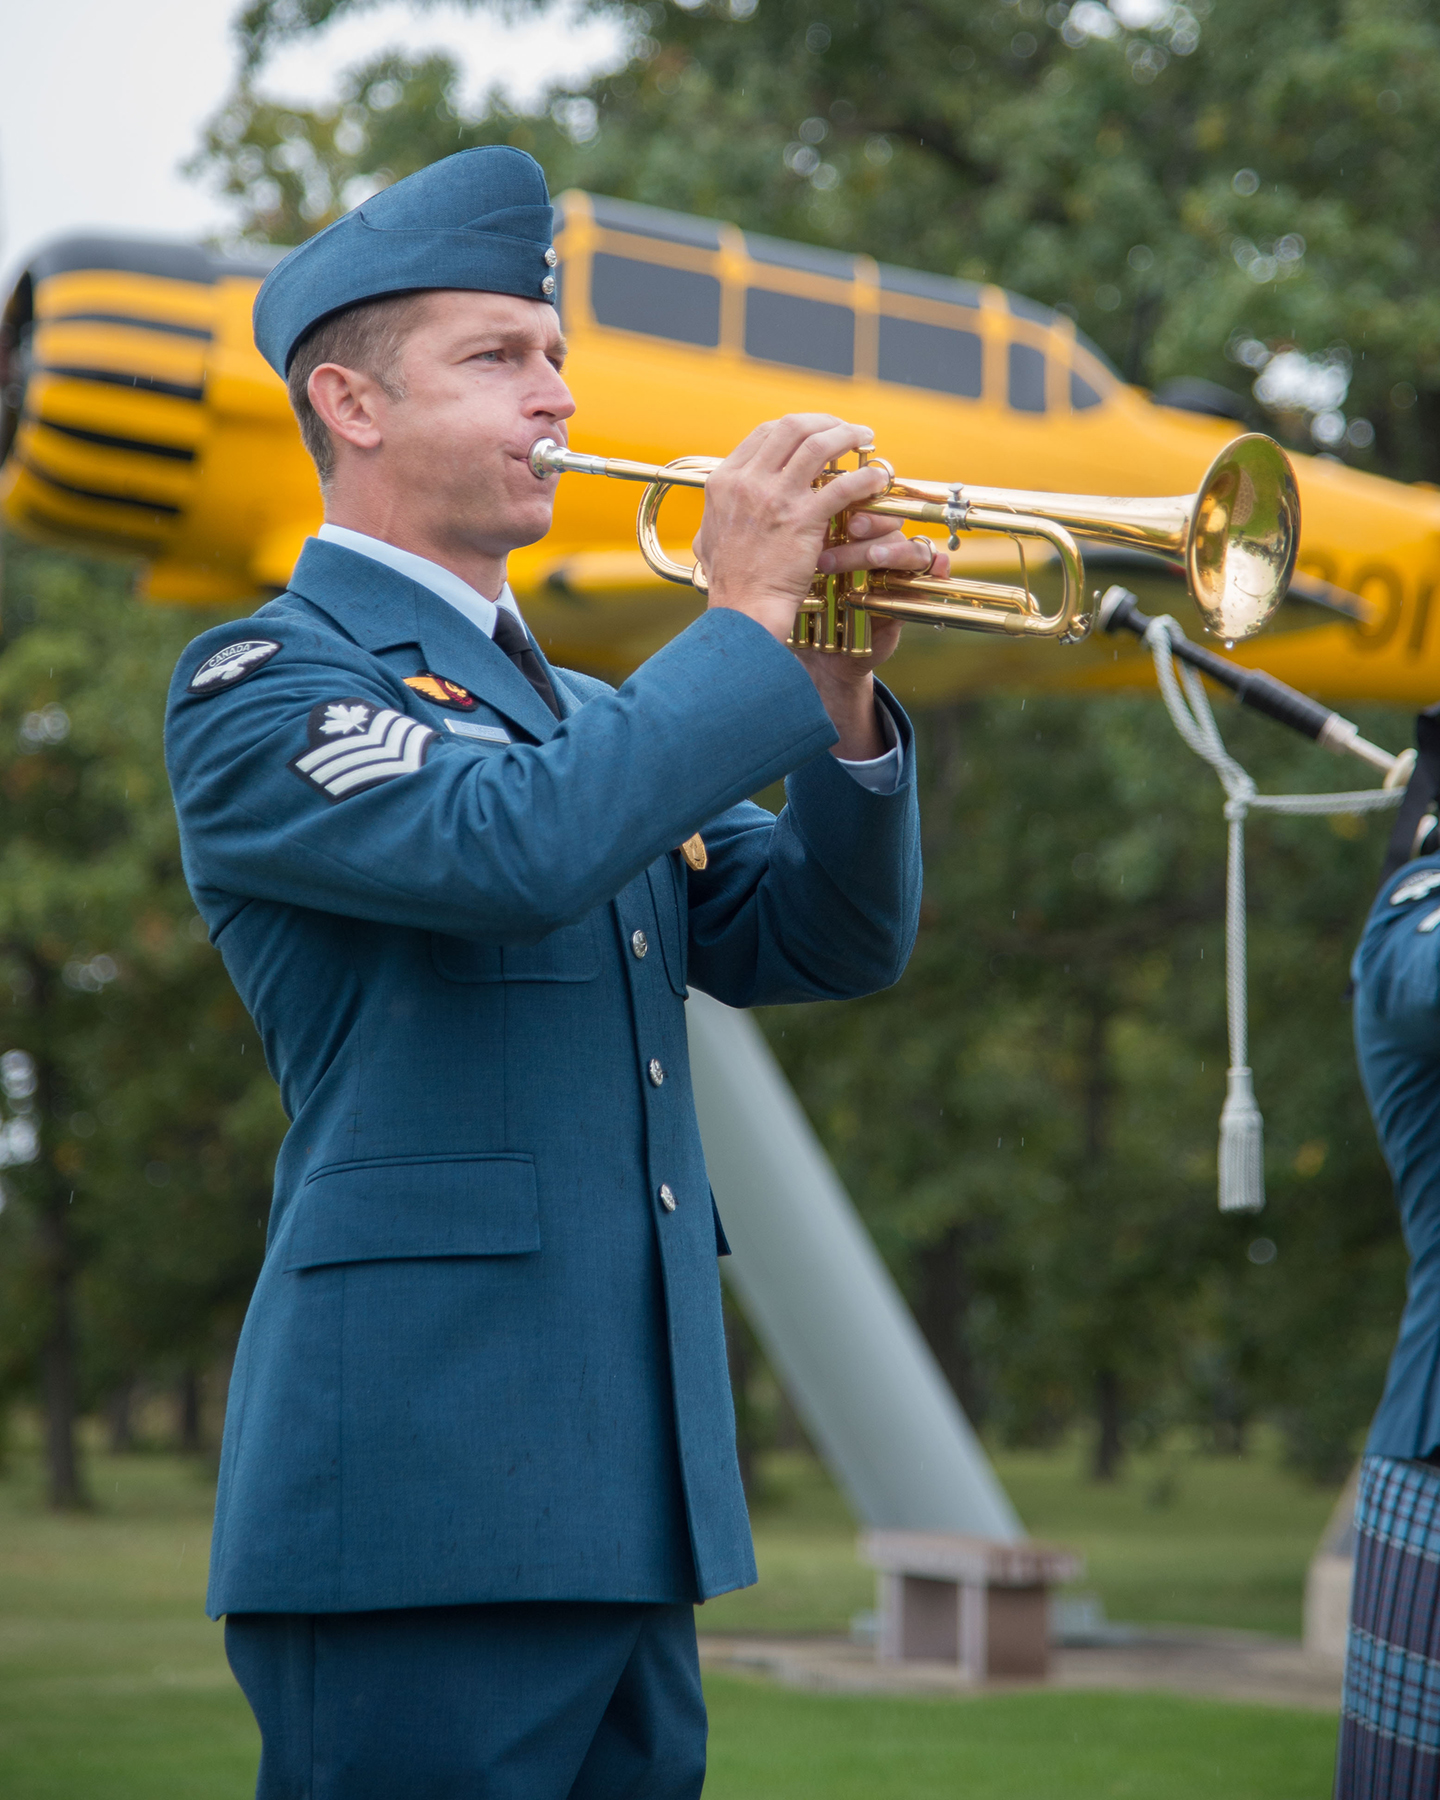 17 Wing Winnipeg, Manitoba, Sergeant Marleau Belanger sounds the Last Post during a ceremony marking the 76th anniversary of the Battle of Britain, held at the Garden of Memories in Winnipeg on September 18, 2016. PHOTO: Corporal Paul Shapka, WG2016-0406-020